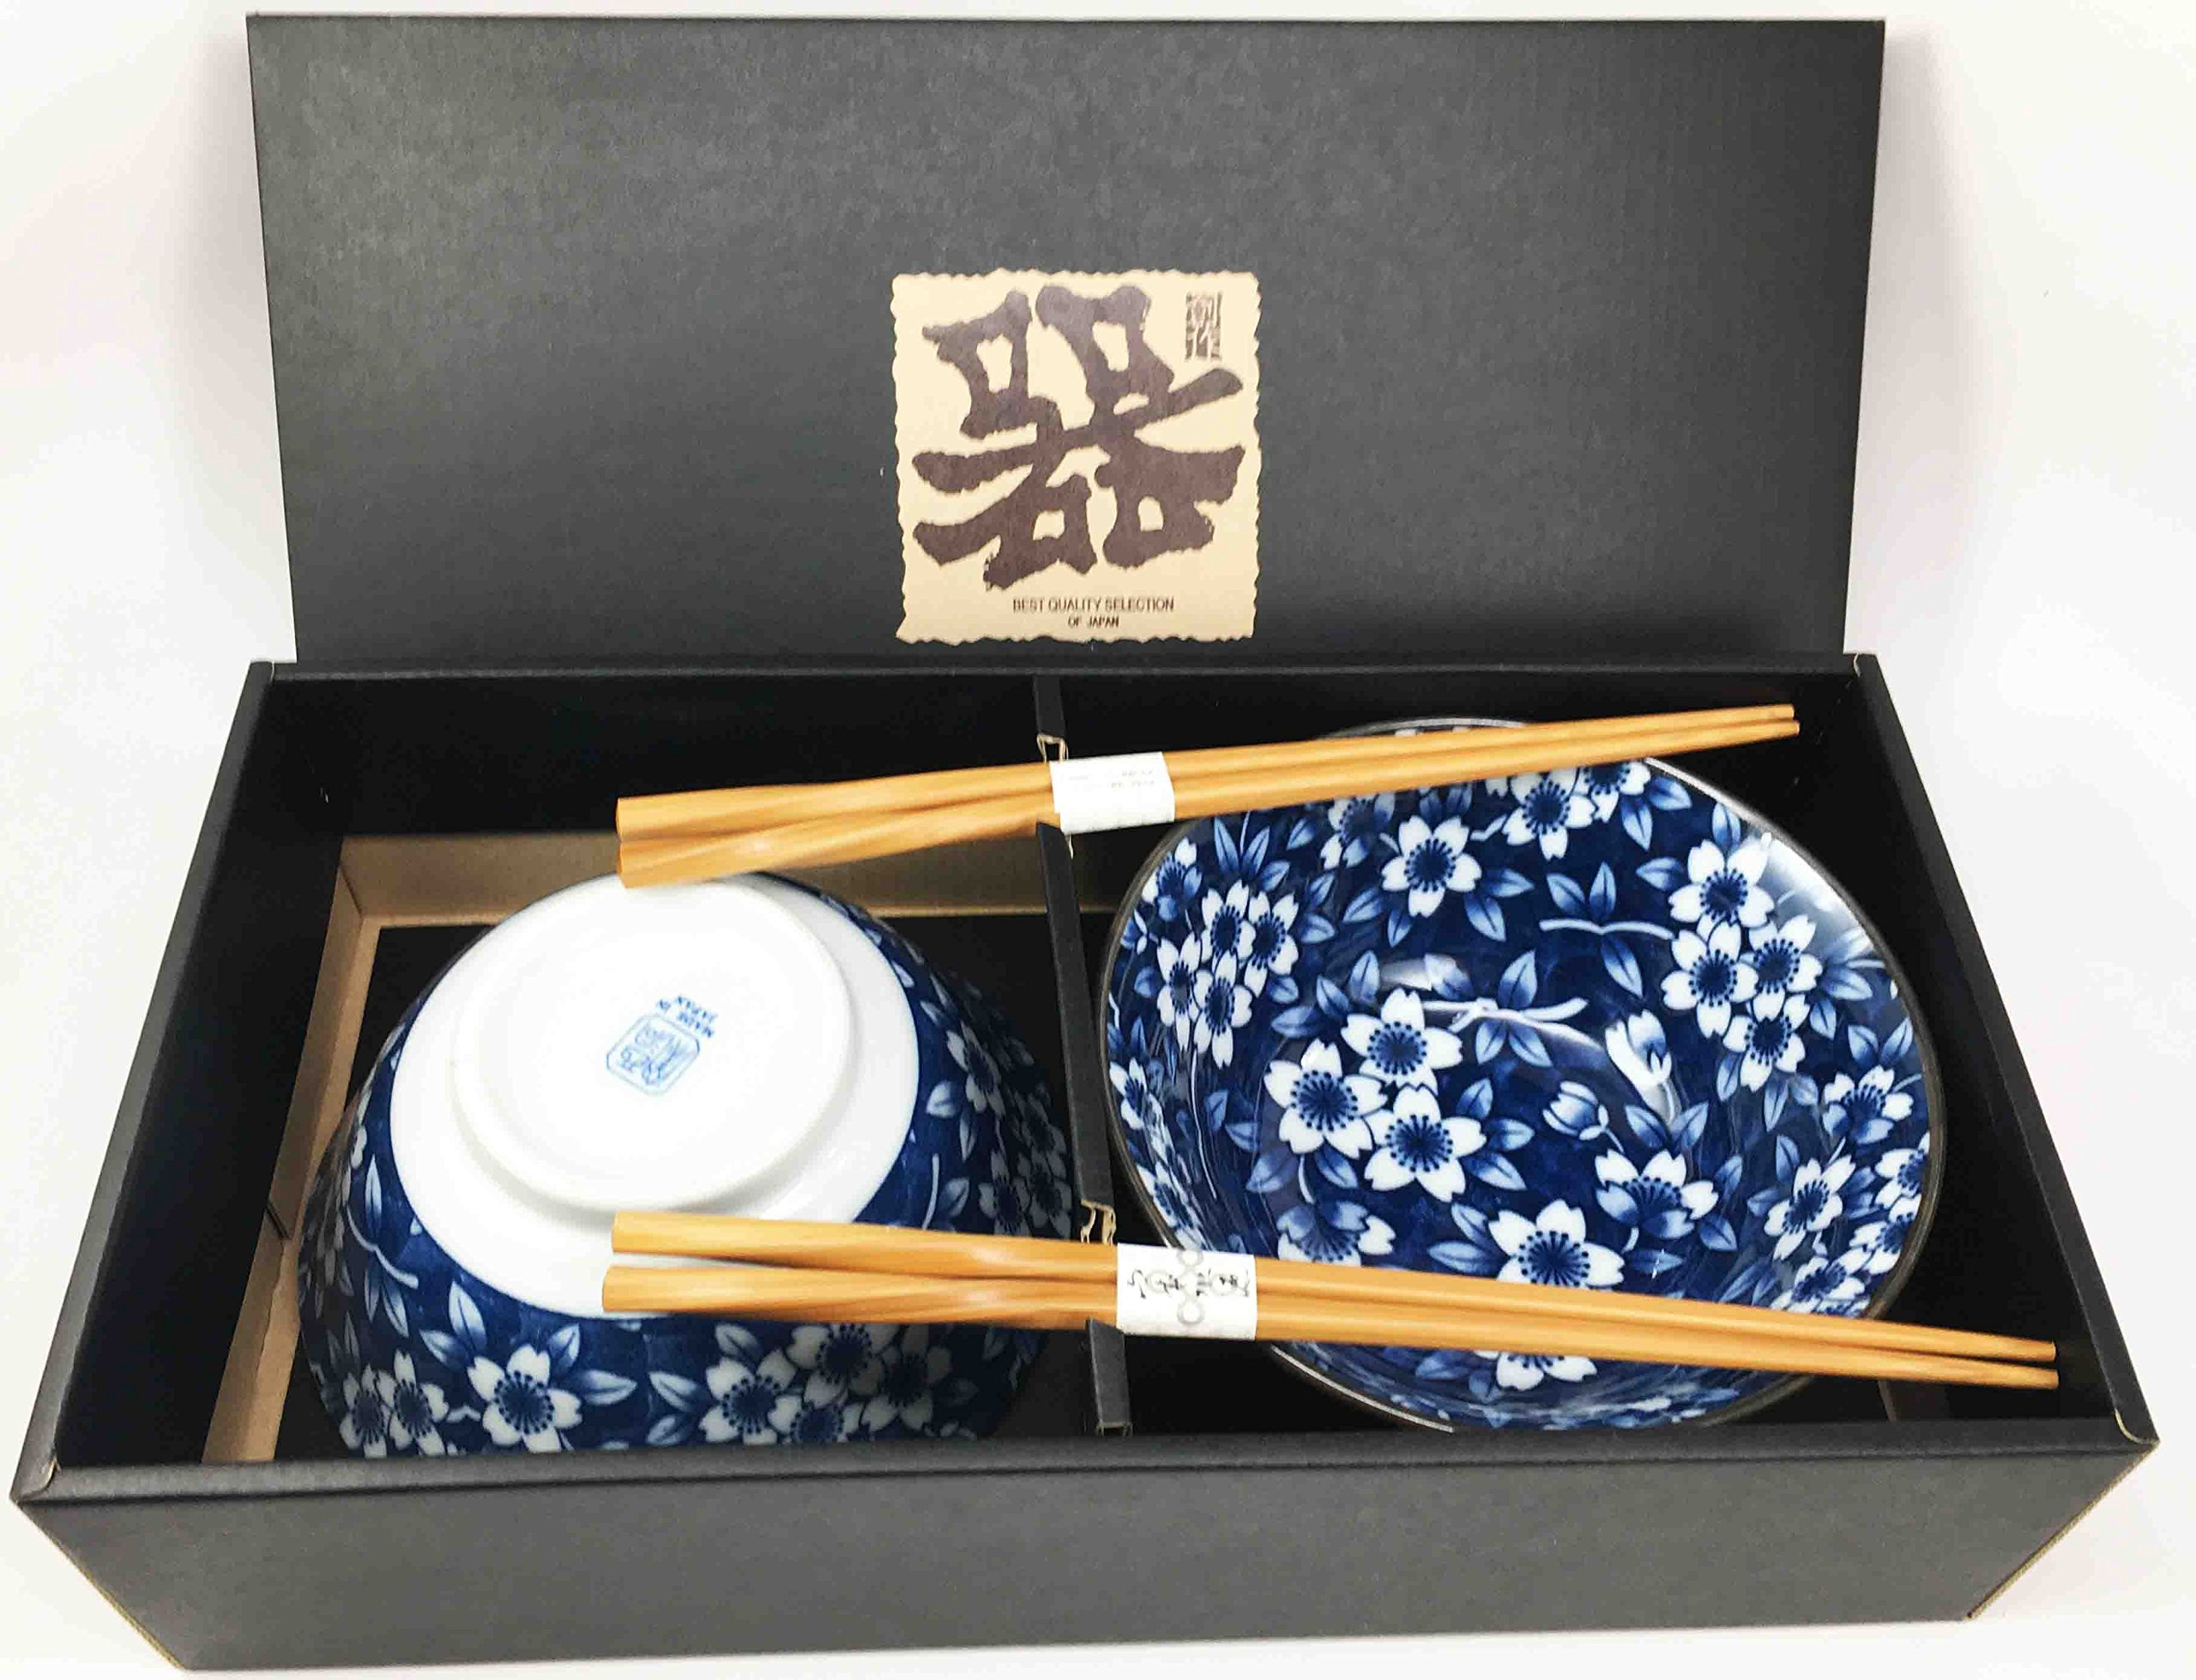 Japanese Floral Pattern Blue Ceramic Rice or Meal Bowl and Chopsticks Set Serves Two Great Gift For College Students Housewarming Asian Living Home Decor by Gifts & Decors (Image #2)